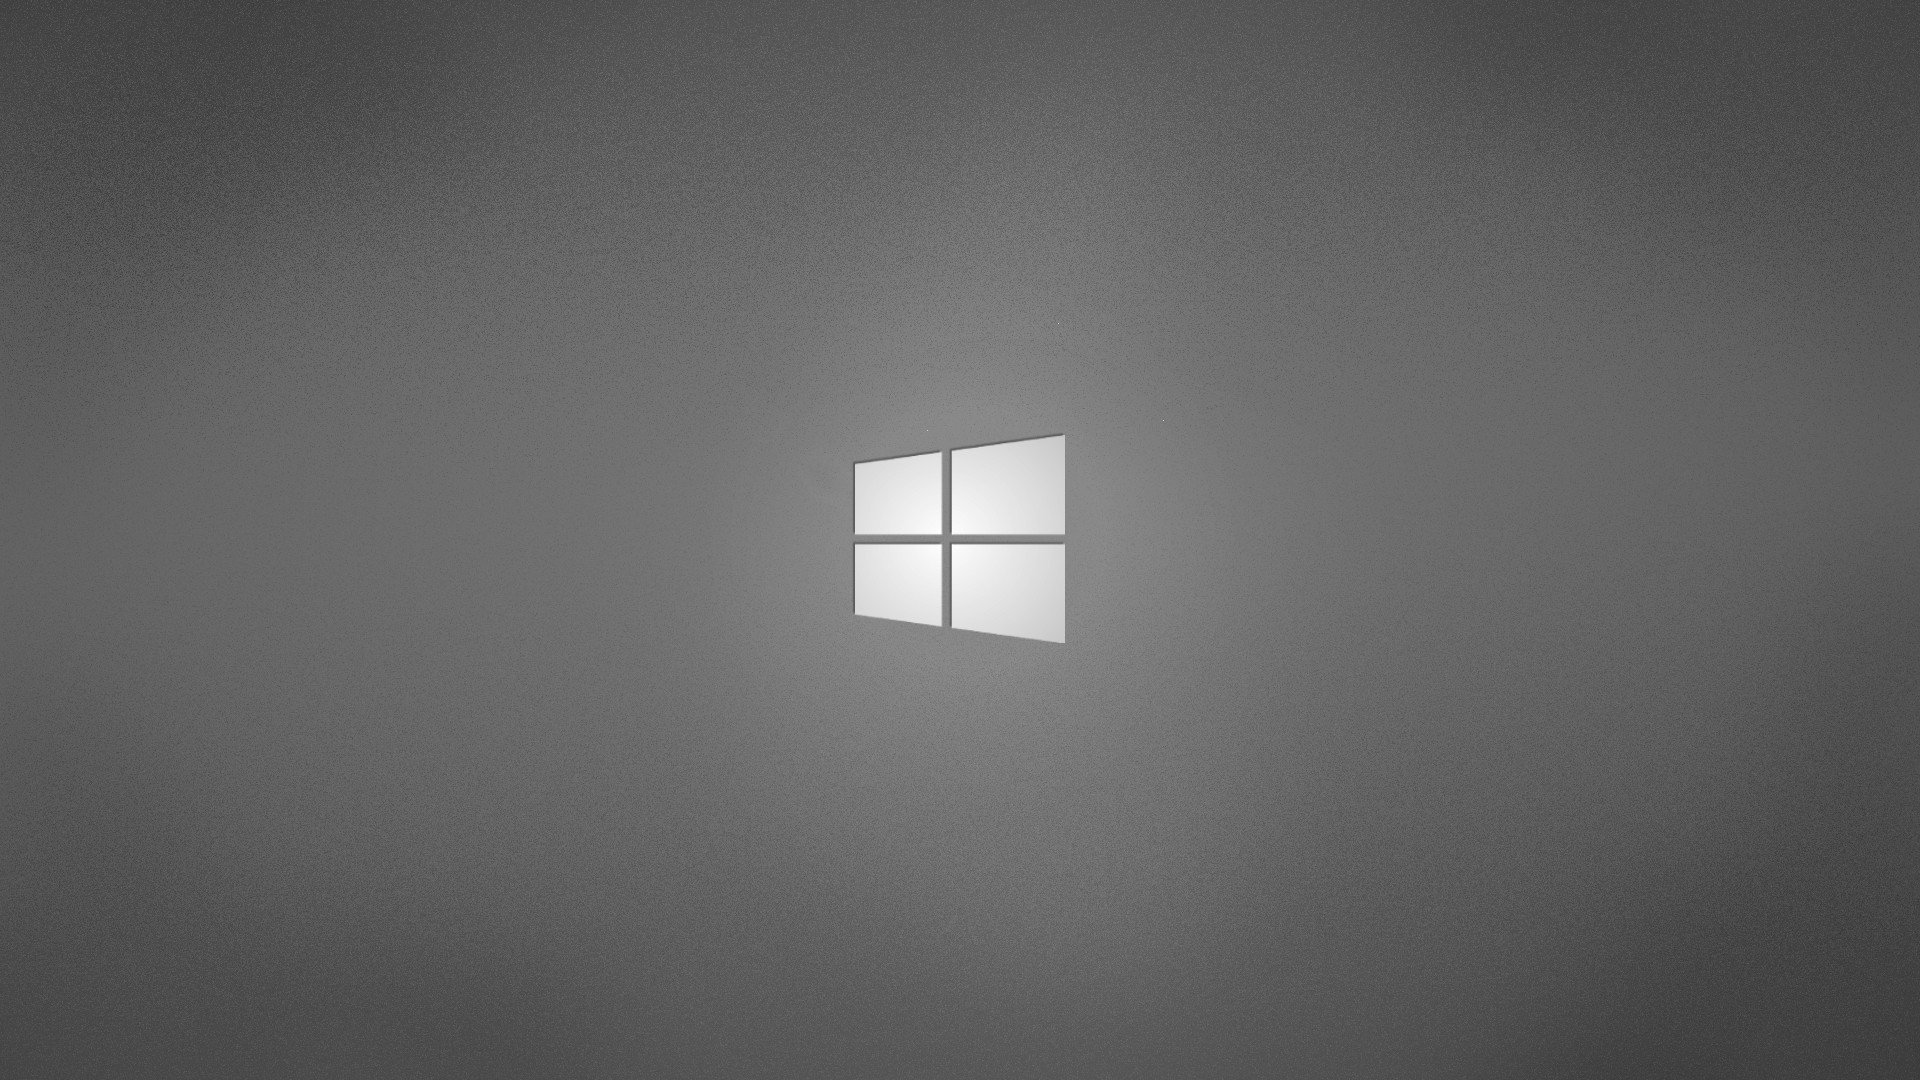 gray grey operating systems windows logo windows wallpaper background 1920x1080